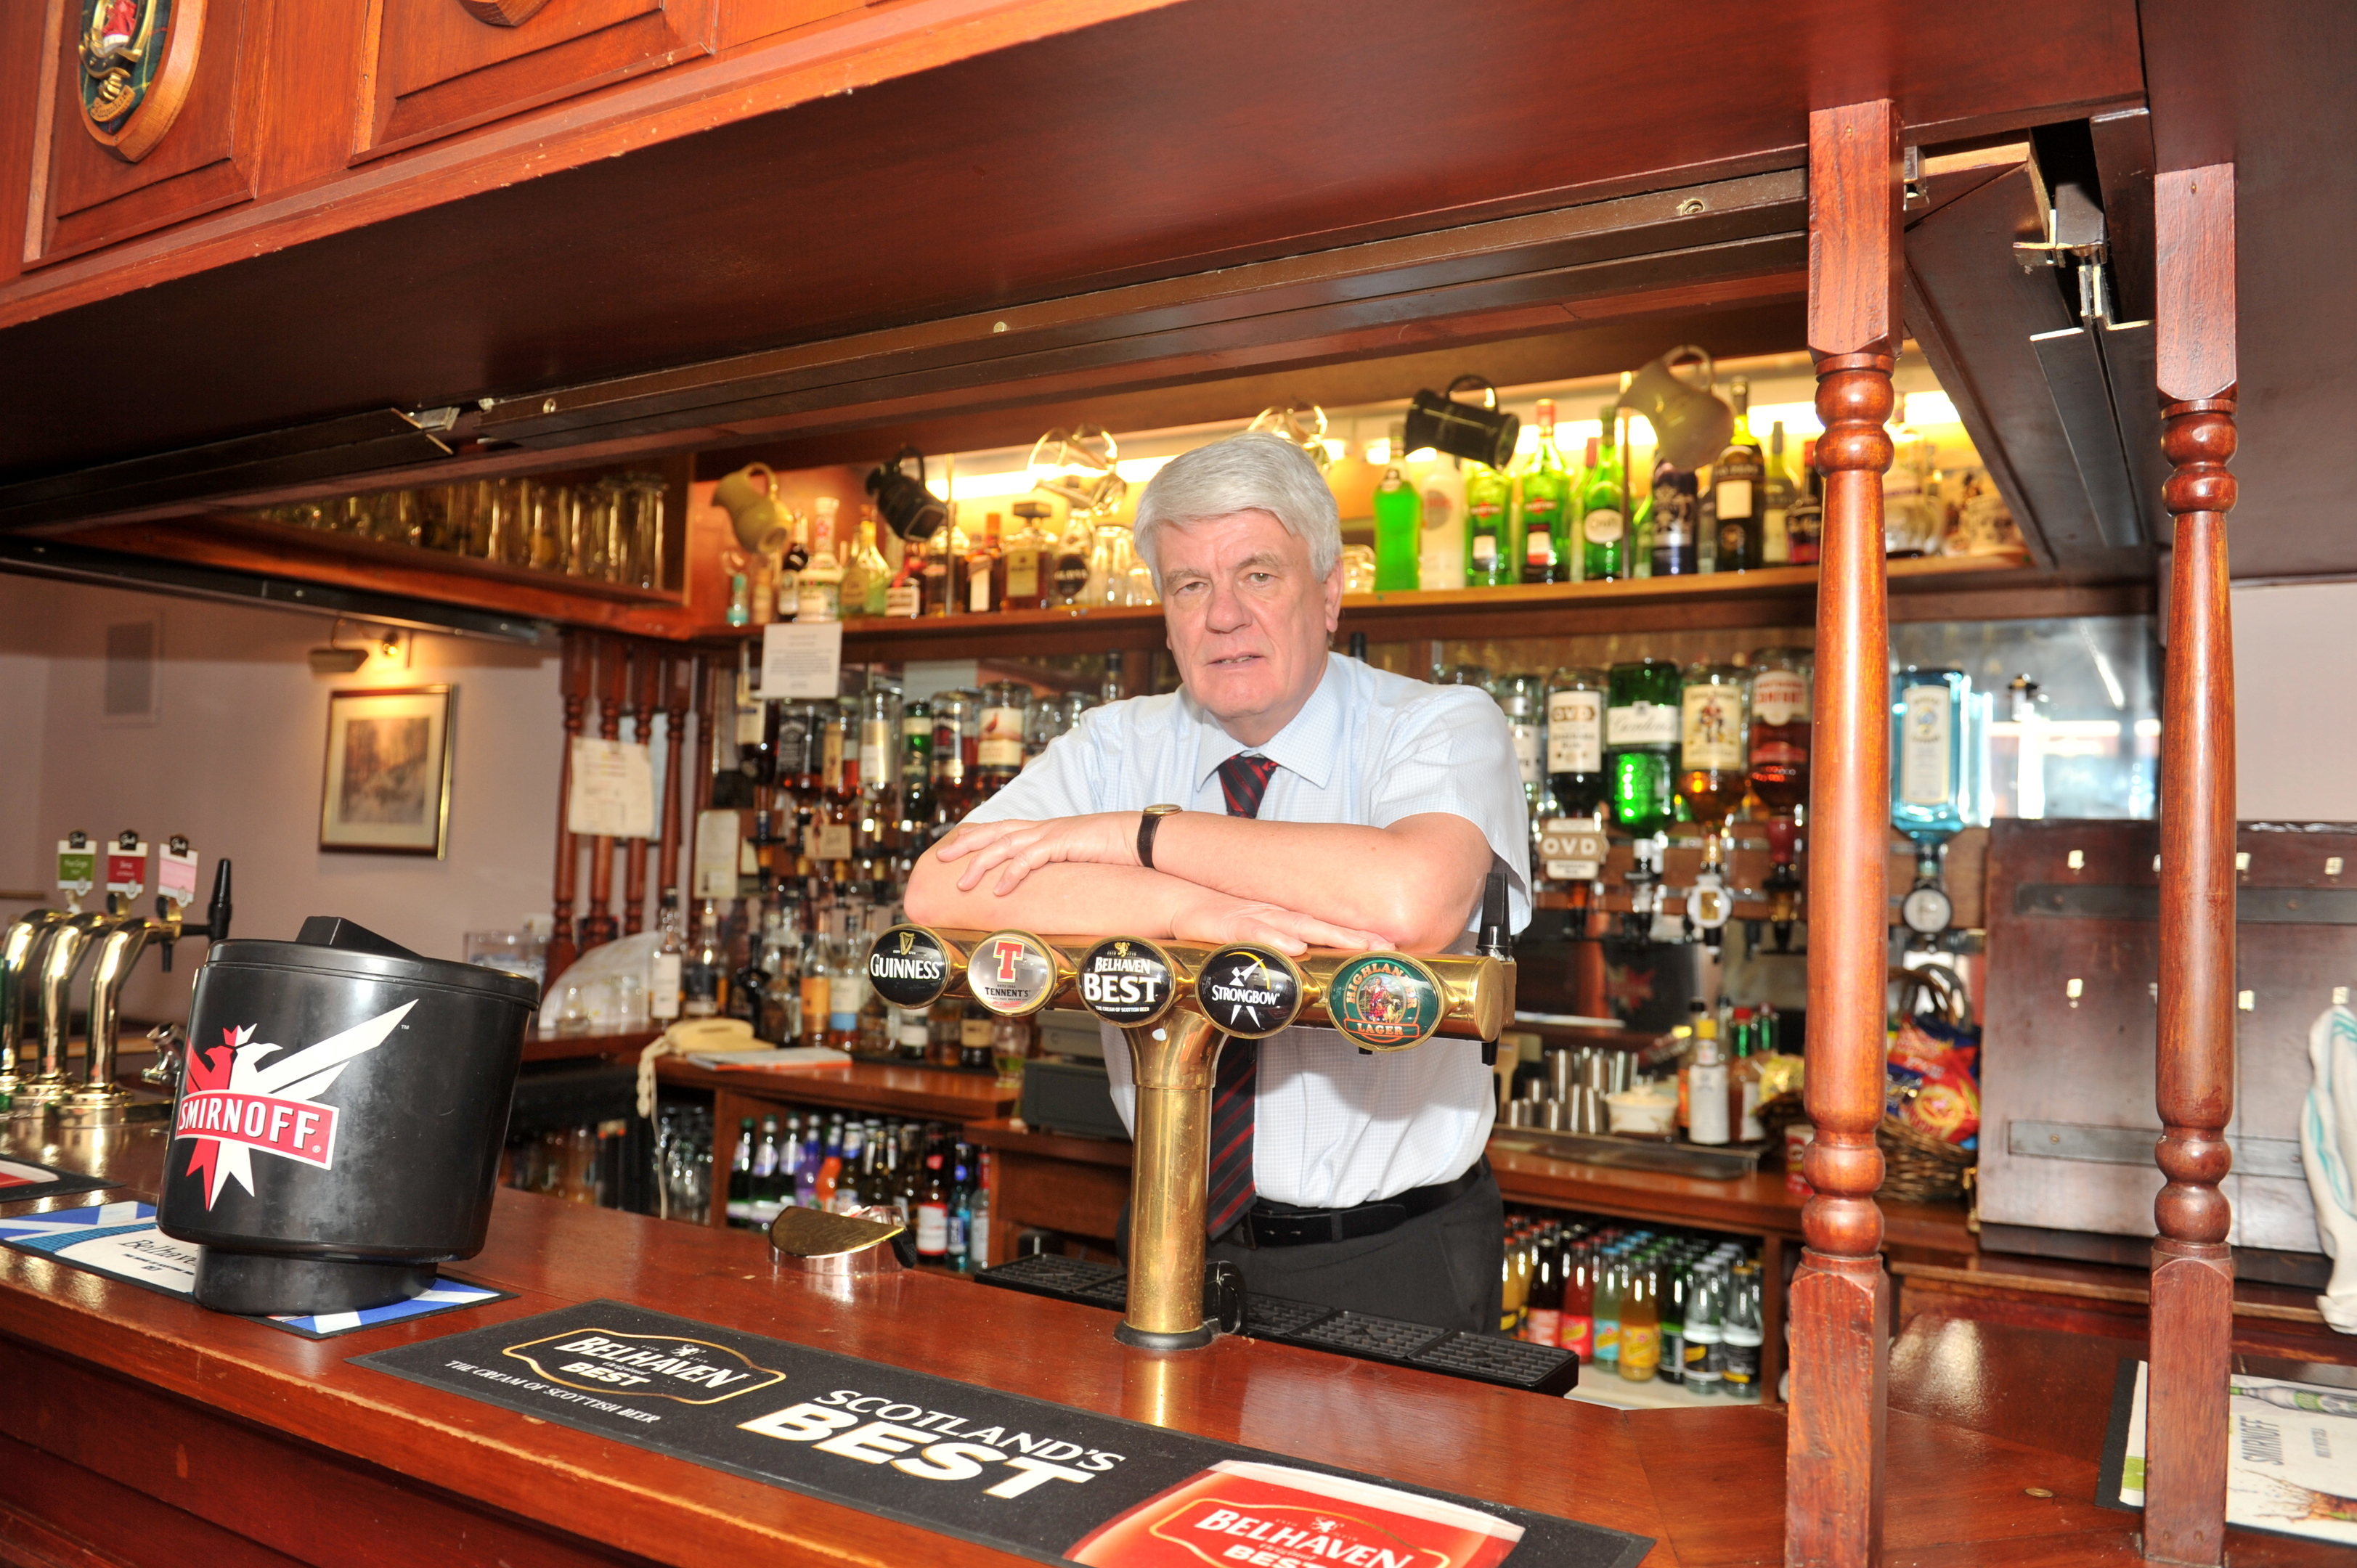 Gordon Arms Hotel owner and head organiser of the Huntly Beer Festival David Sherriffs.